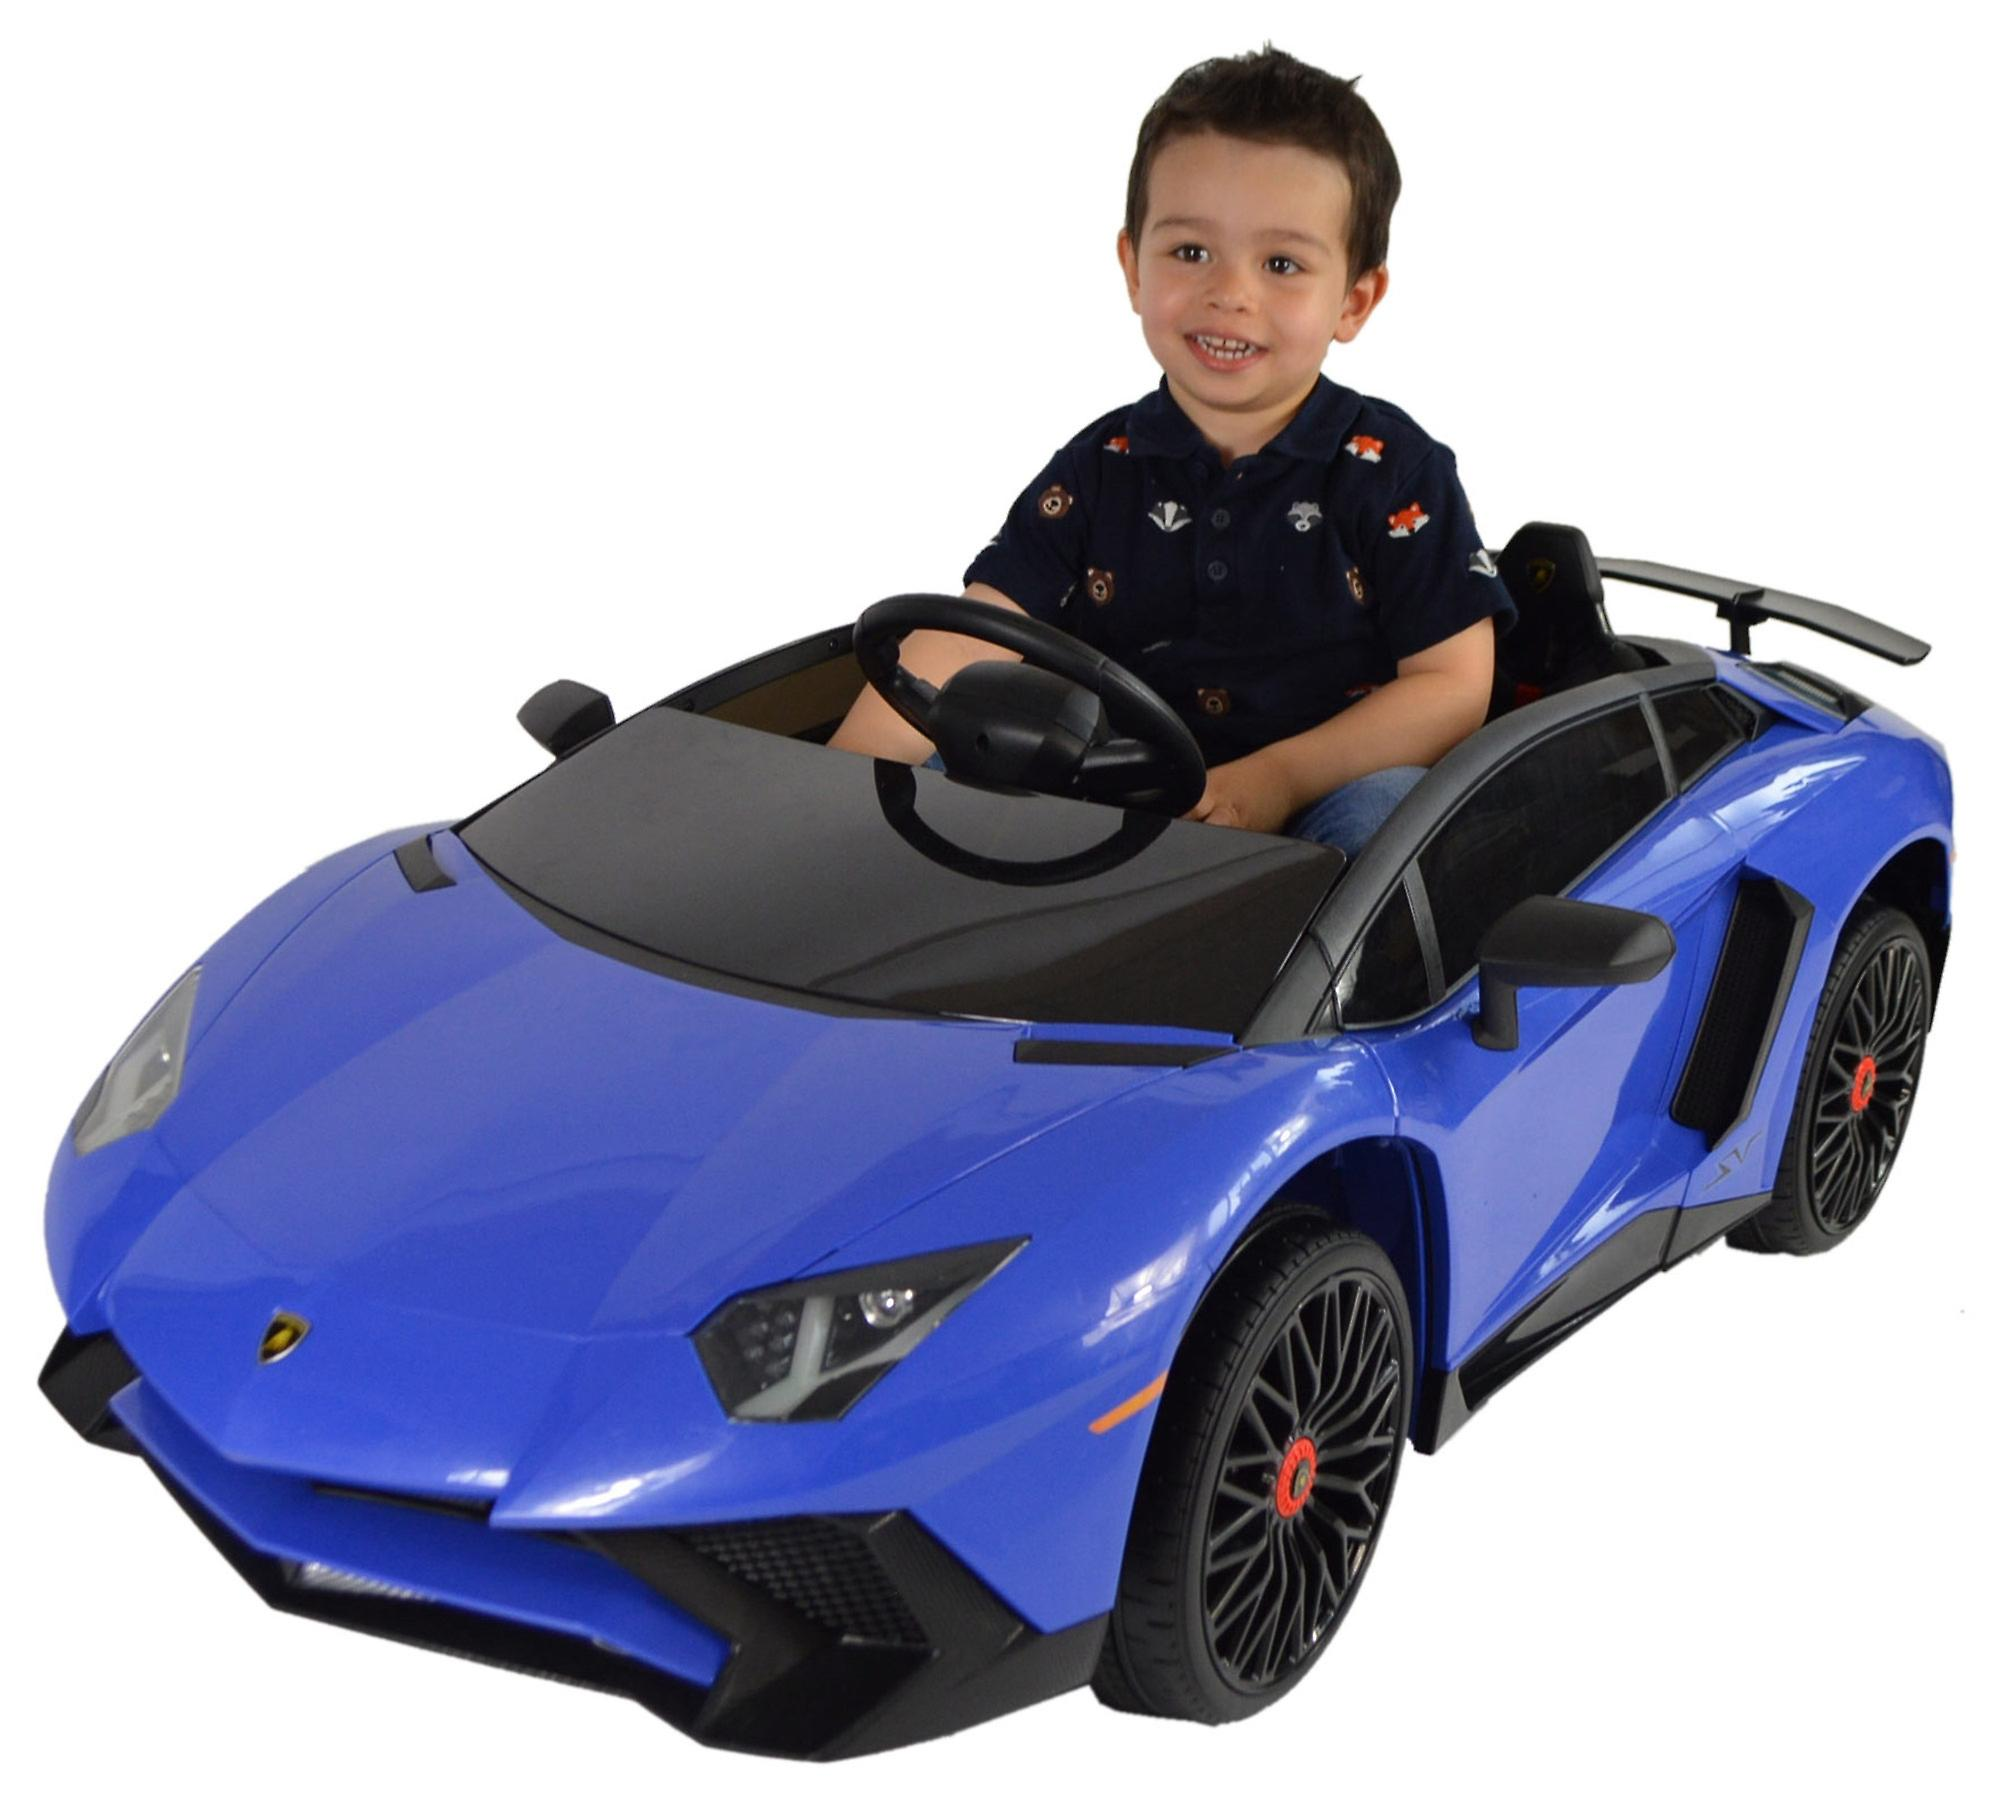 Licensed Lamborghini Aventador Roadster 12v Kids Electric Ride On Car